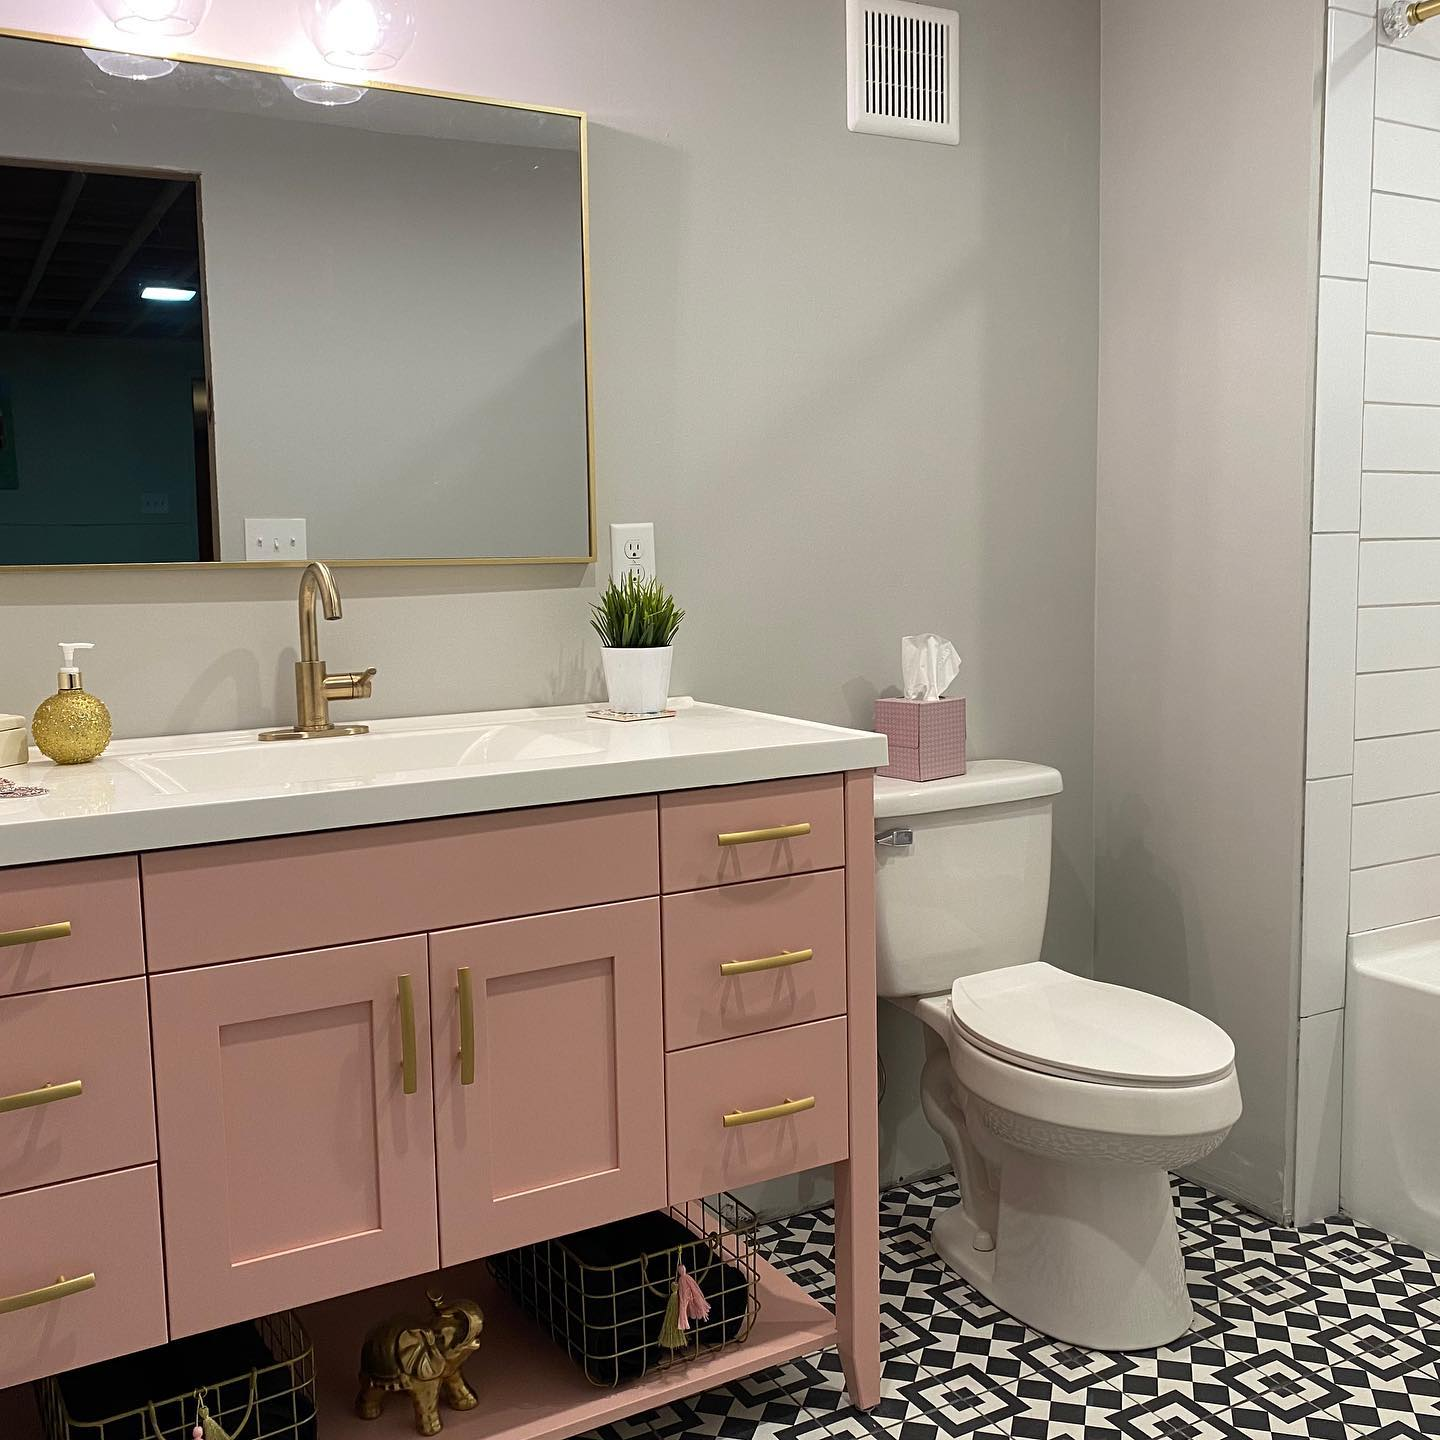 Blush pink bathroom vanity with gold accents and bold pattern tile